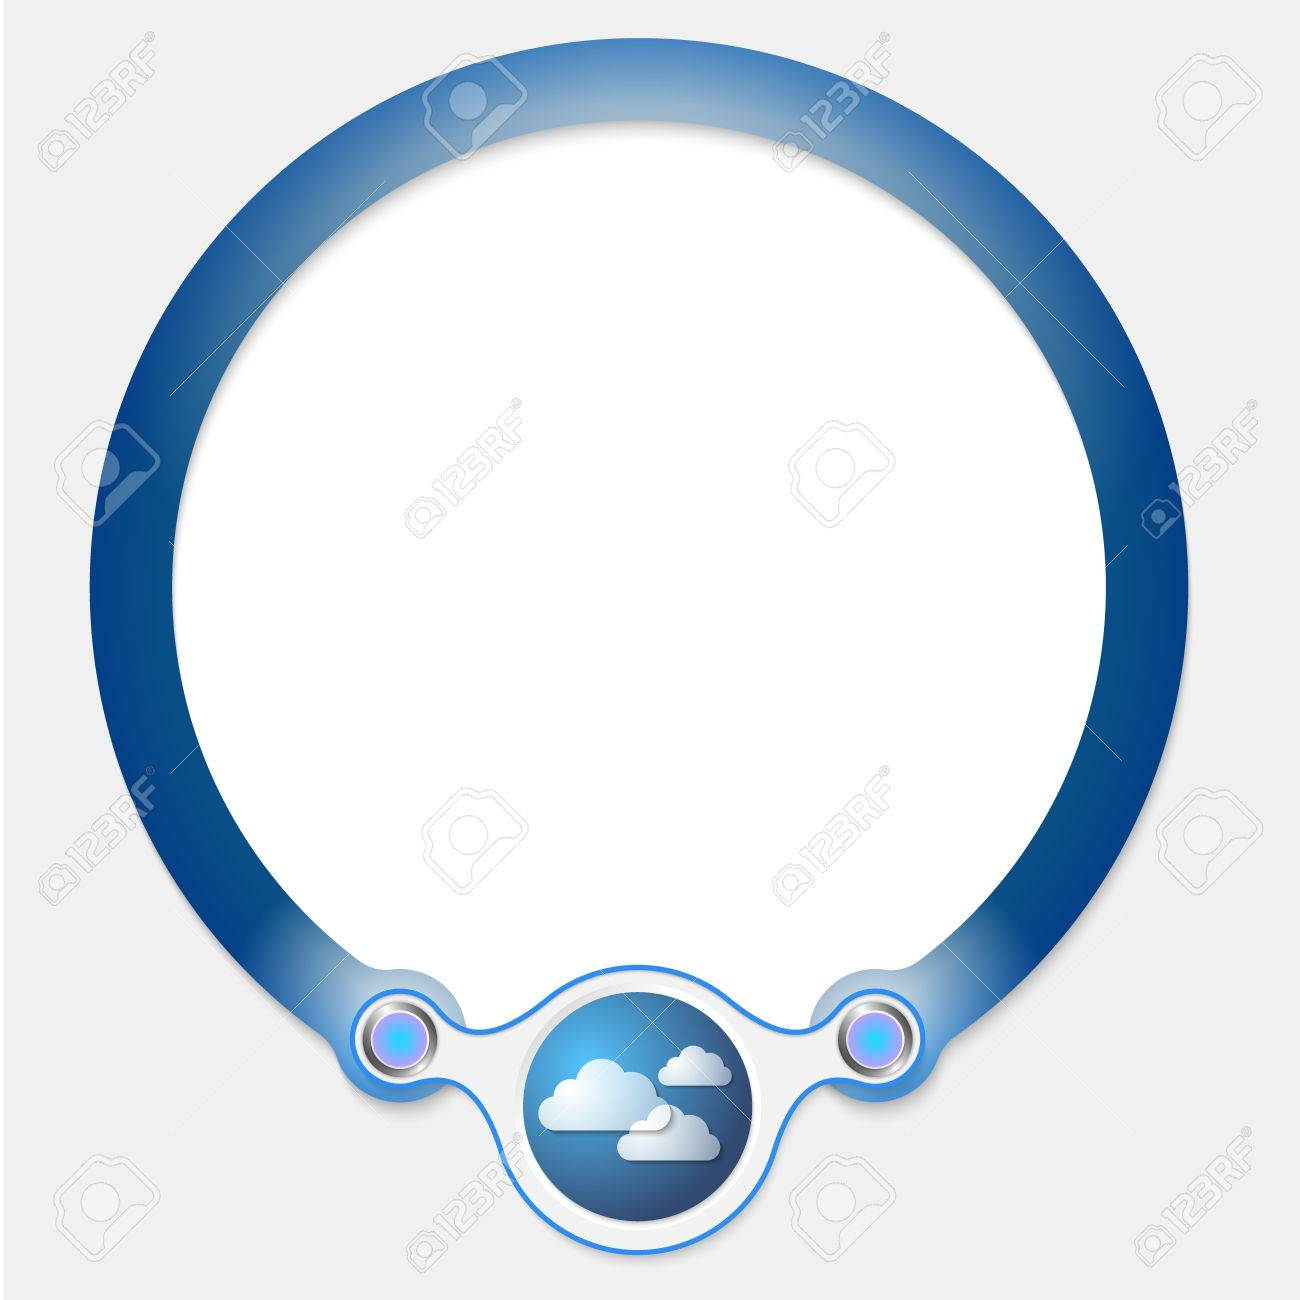 Blue circular frame for your text and cloud symbol royalty free blue circular frame for your text and cloud symbol stock vector 39876717 biocorpaavc Gallery